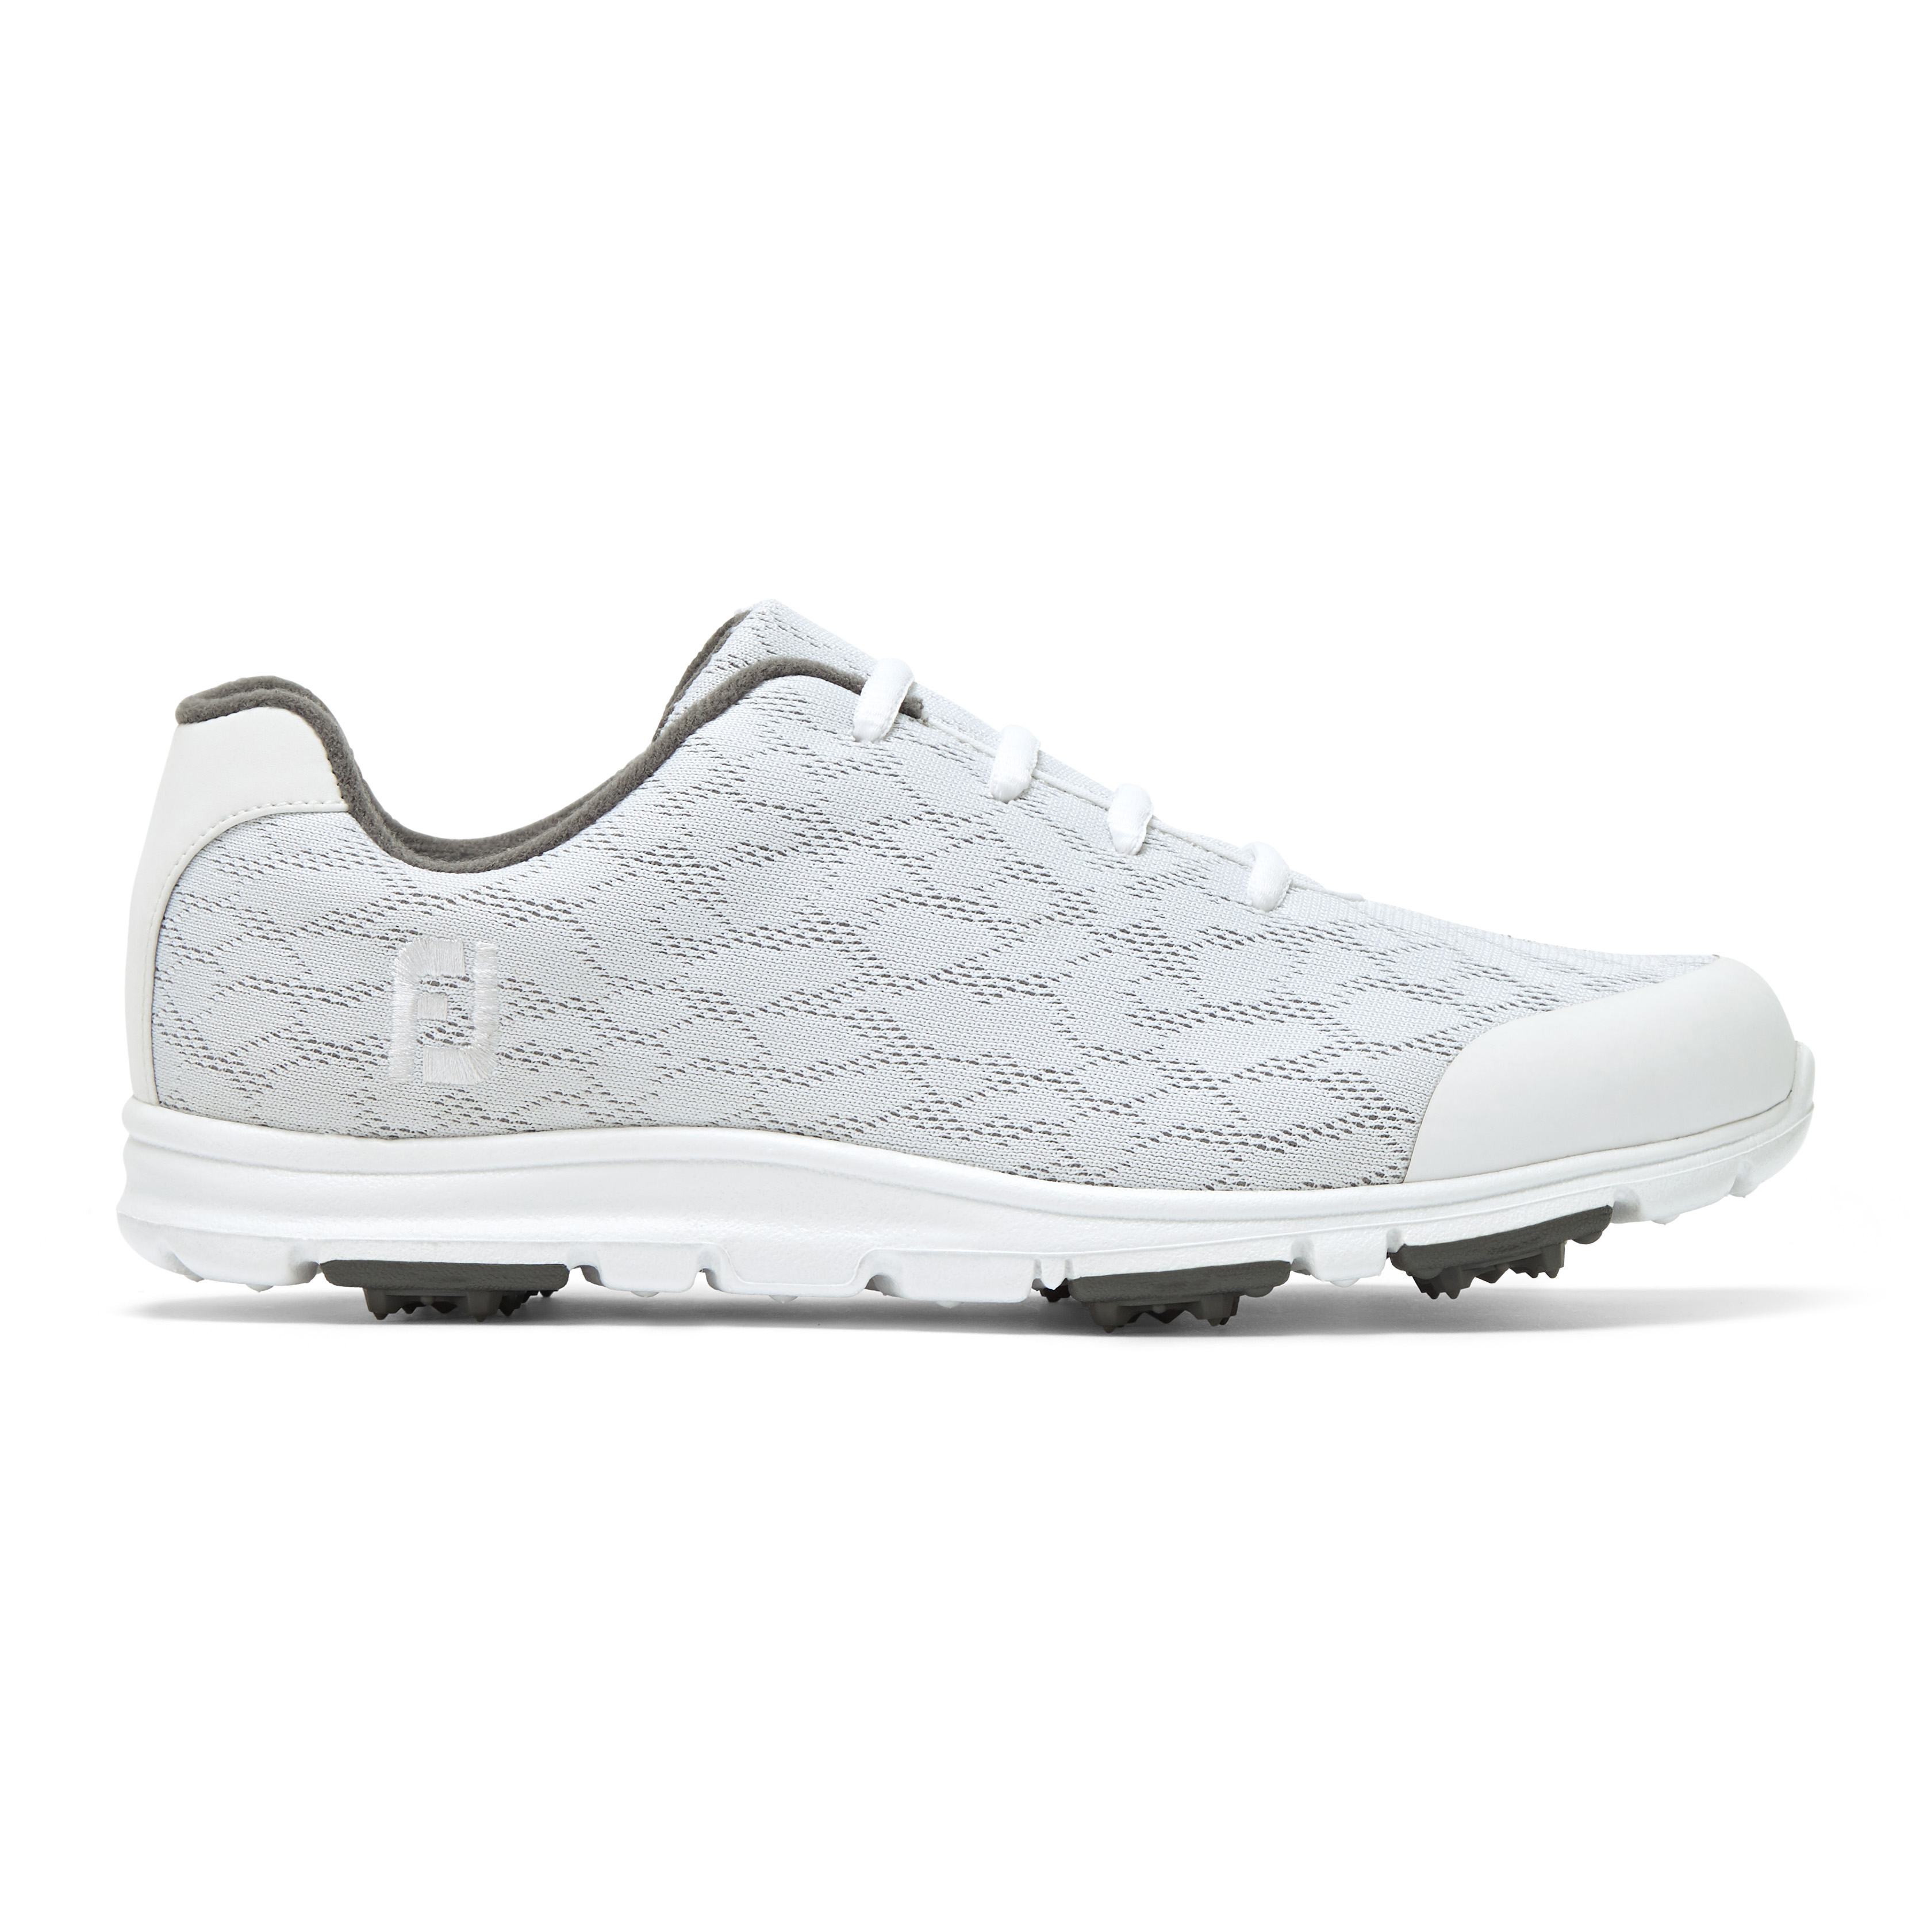 FootJoy ENJOY